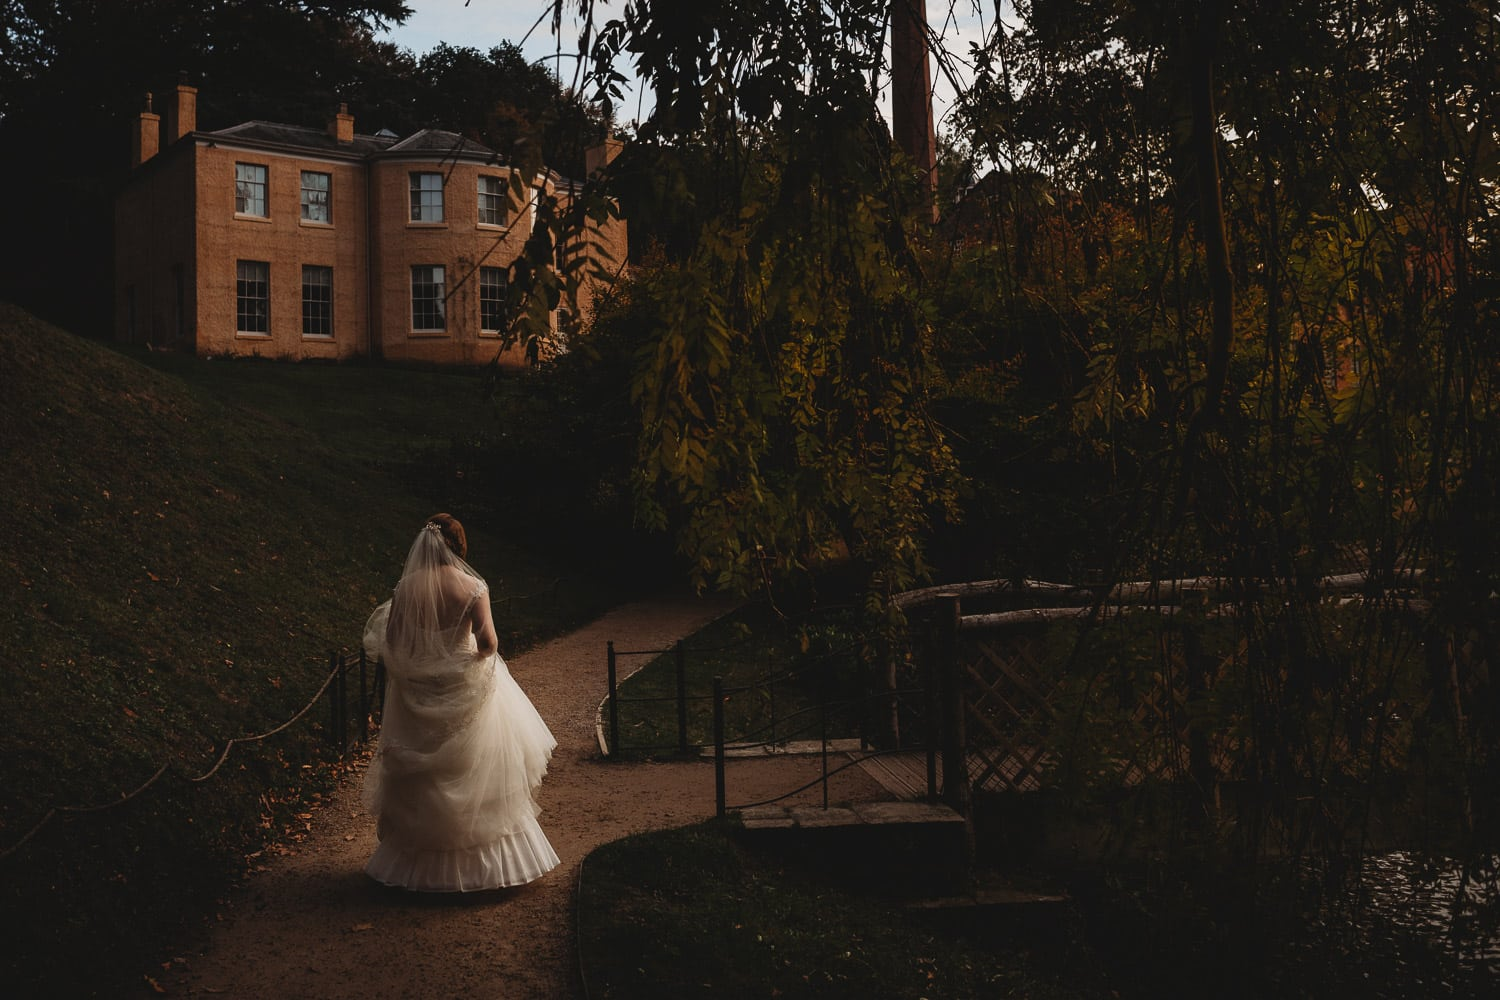 North Wales Wedding Photographer at Quarry Bank Mill